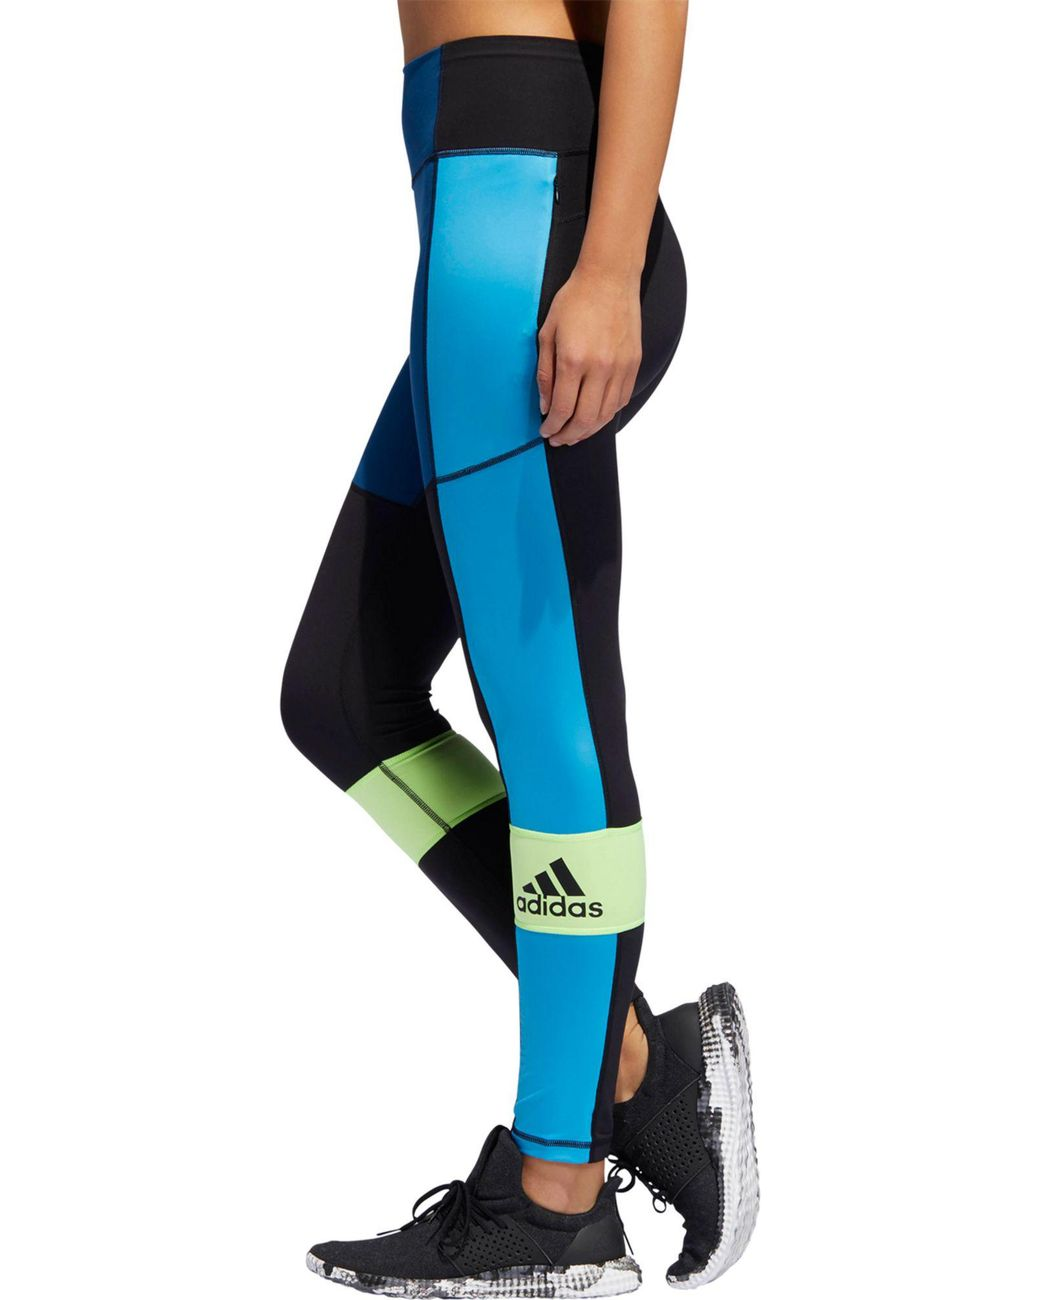 ADIDAS PERFORMANCE BELIEVE This 78 Tight Damen Leggings Blau Sport Leggings